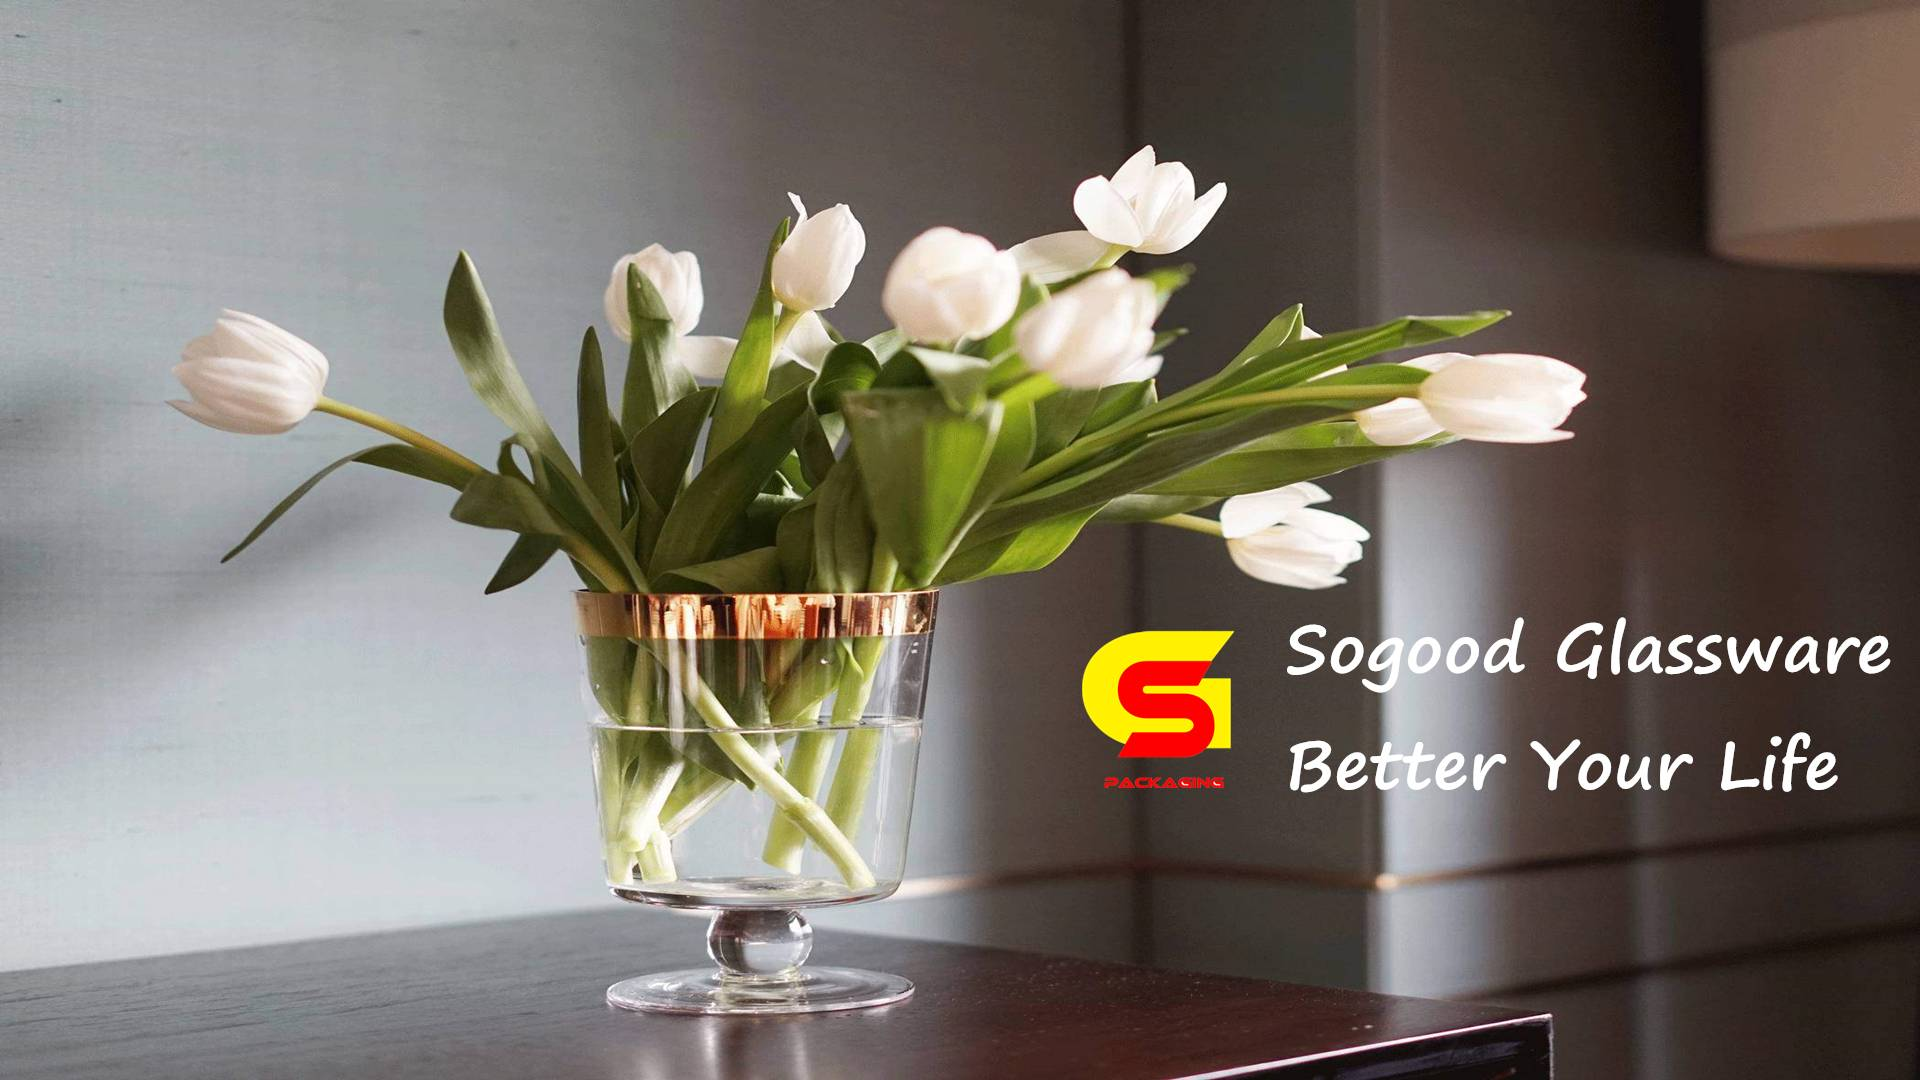 Sogood GlasswareBetter Your Life